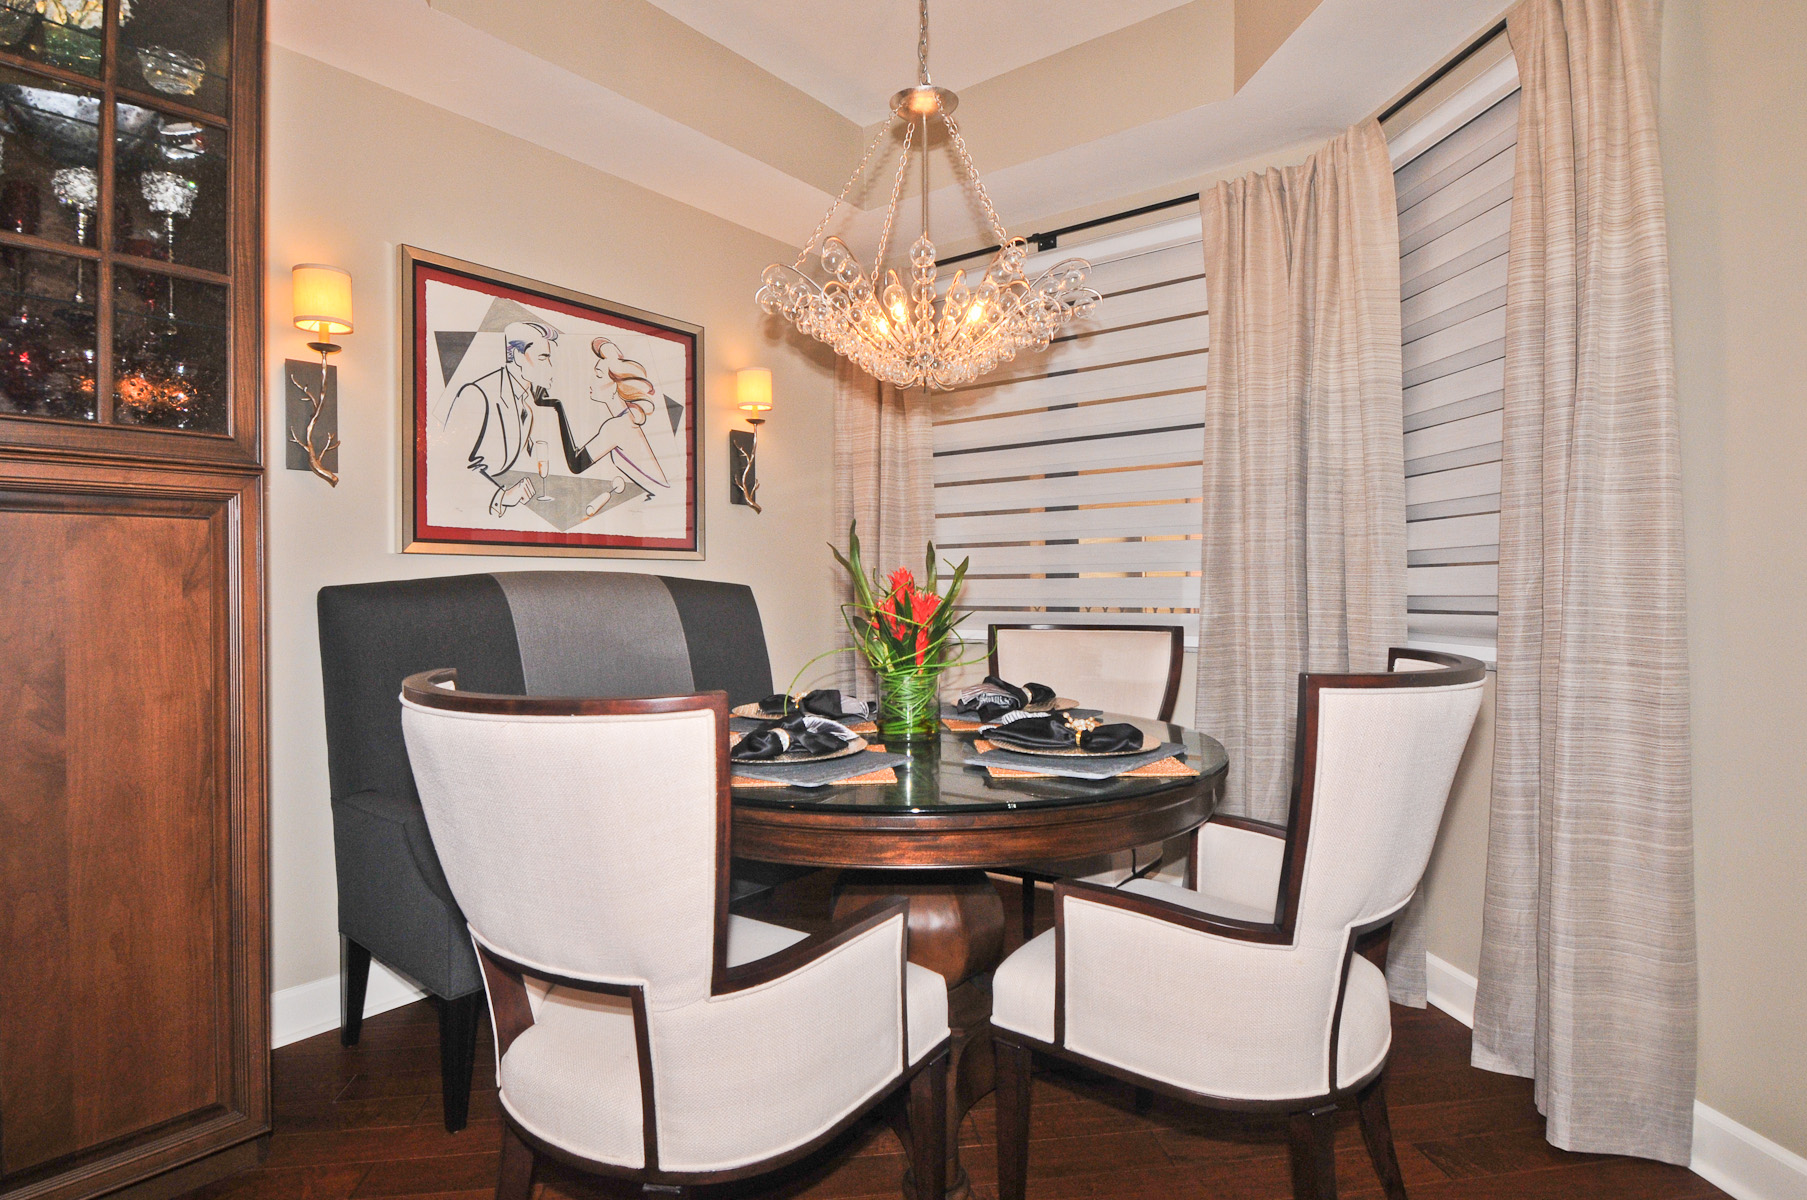 Diannes Banquette Dining Room